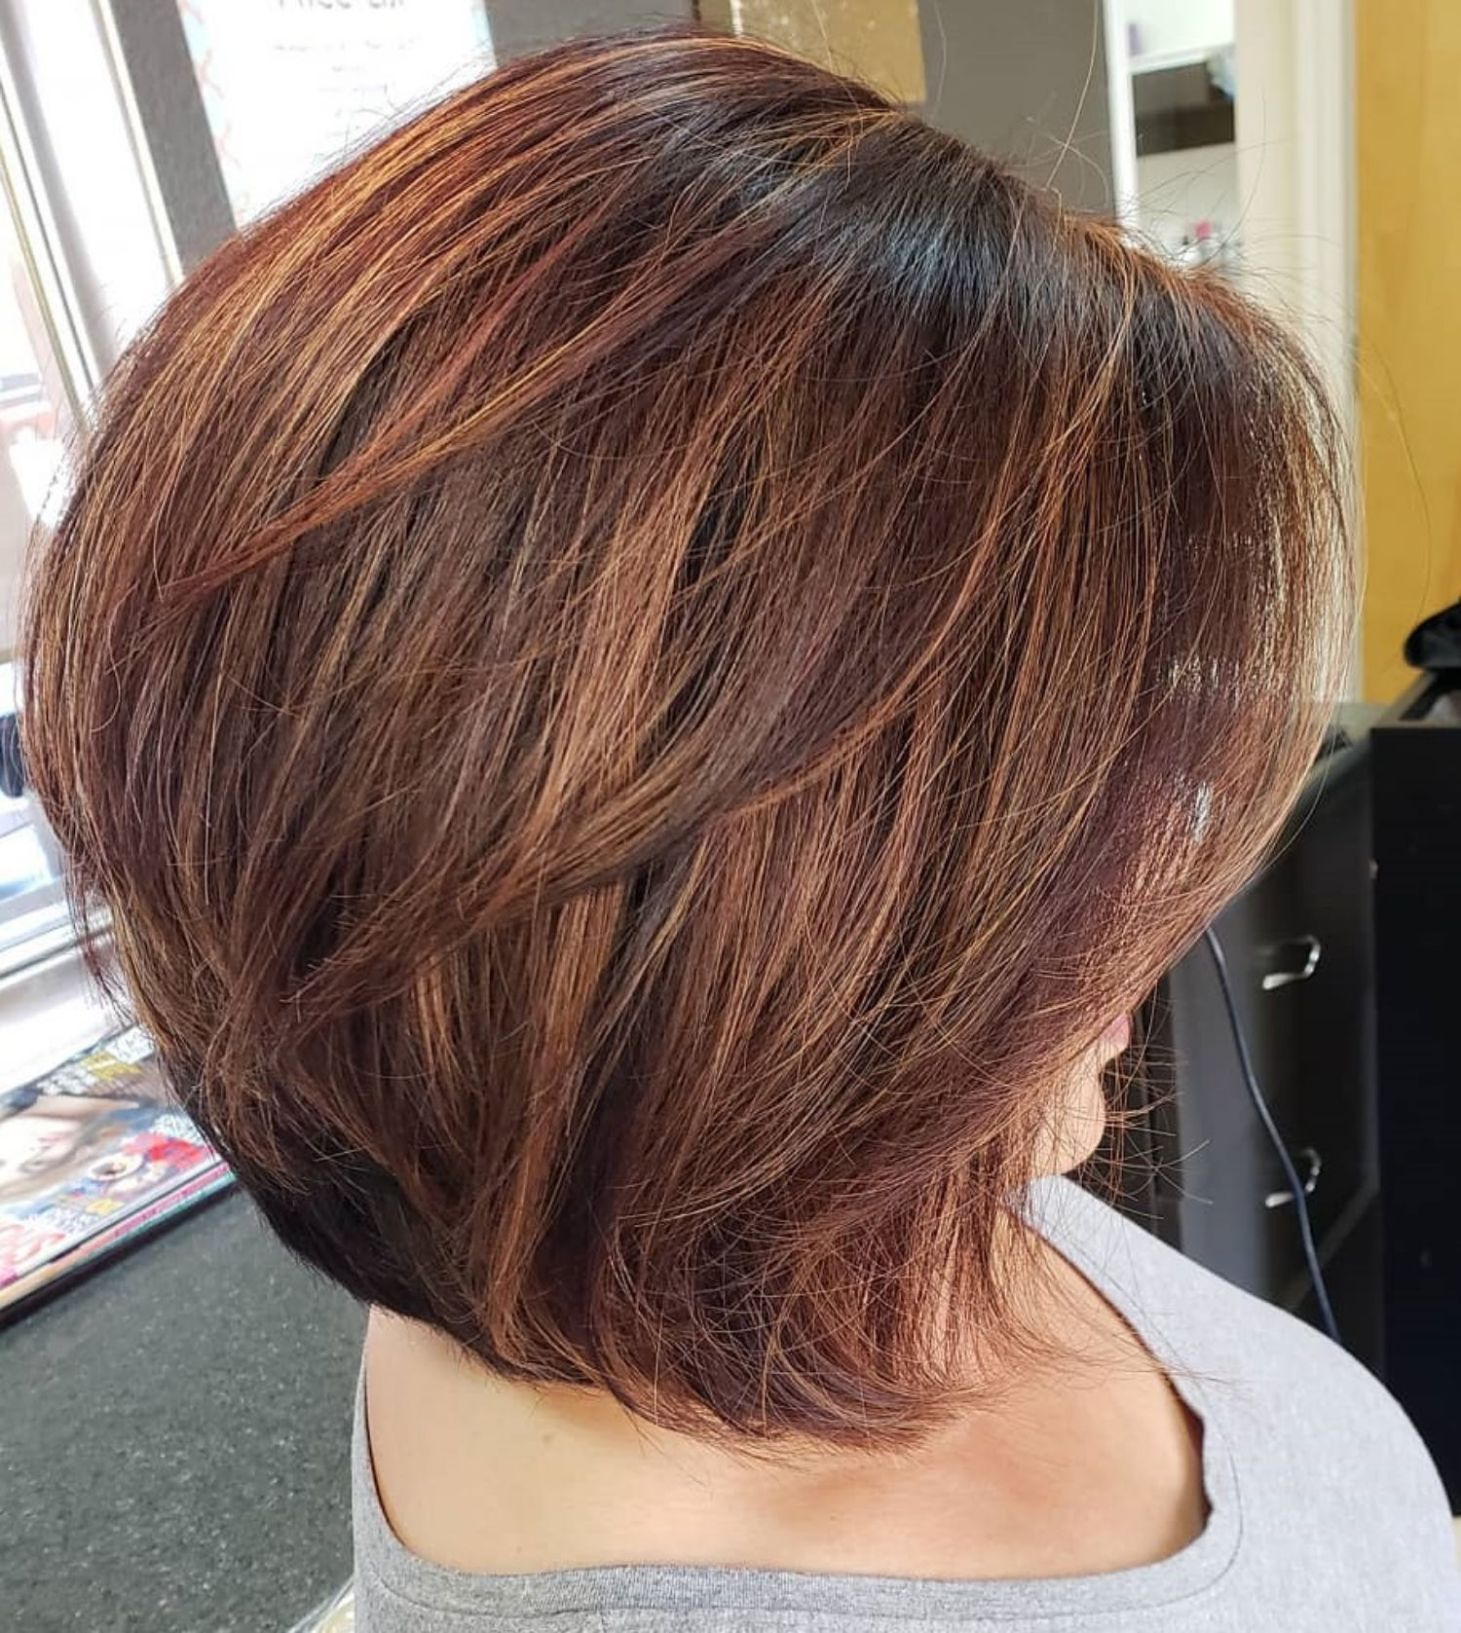 60 Beautiful And Convenient Medium Bob Hairstyles Medium Bob Hairstyles Medium Hair Styles Bob Hairstyles